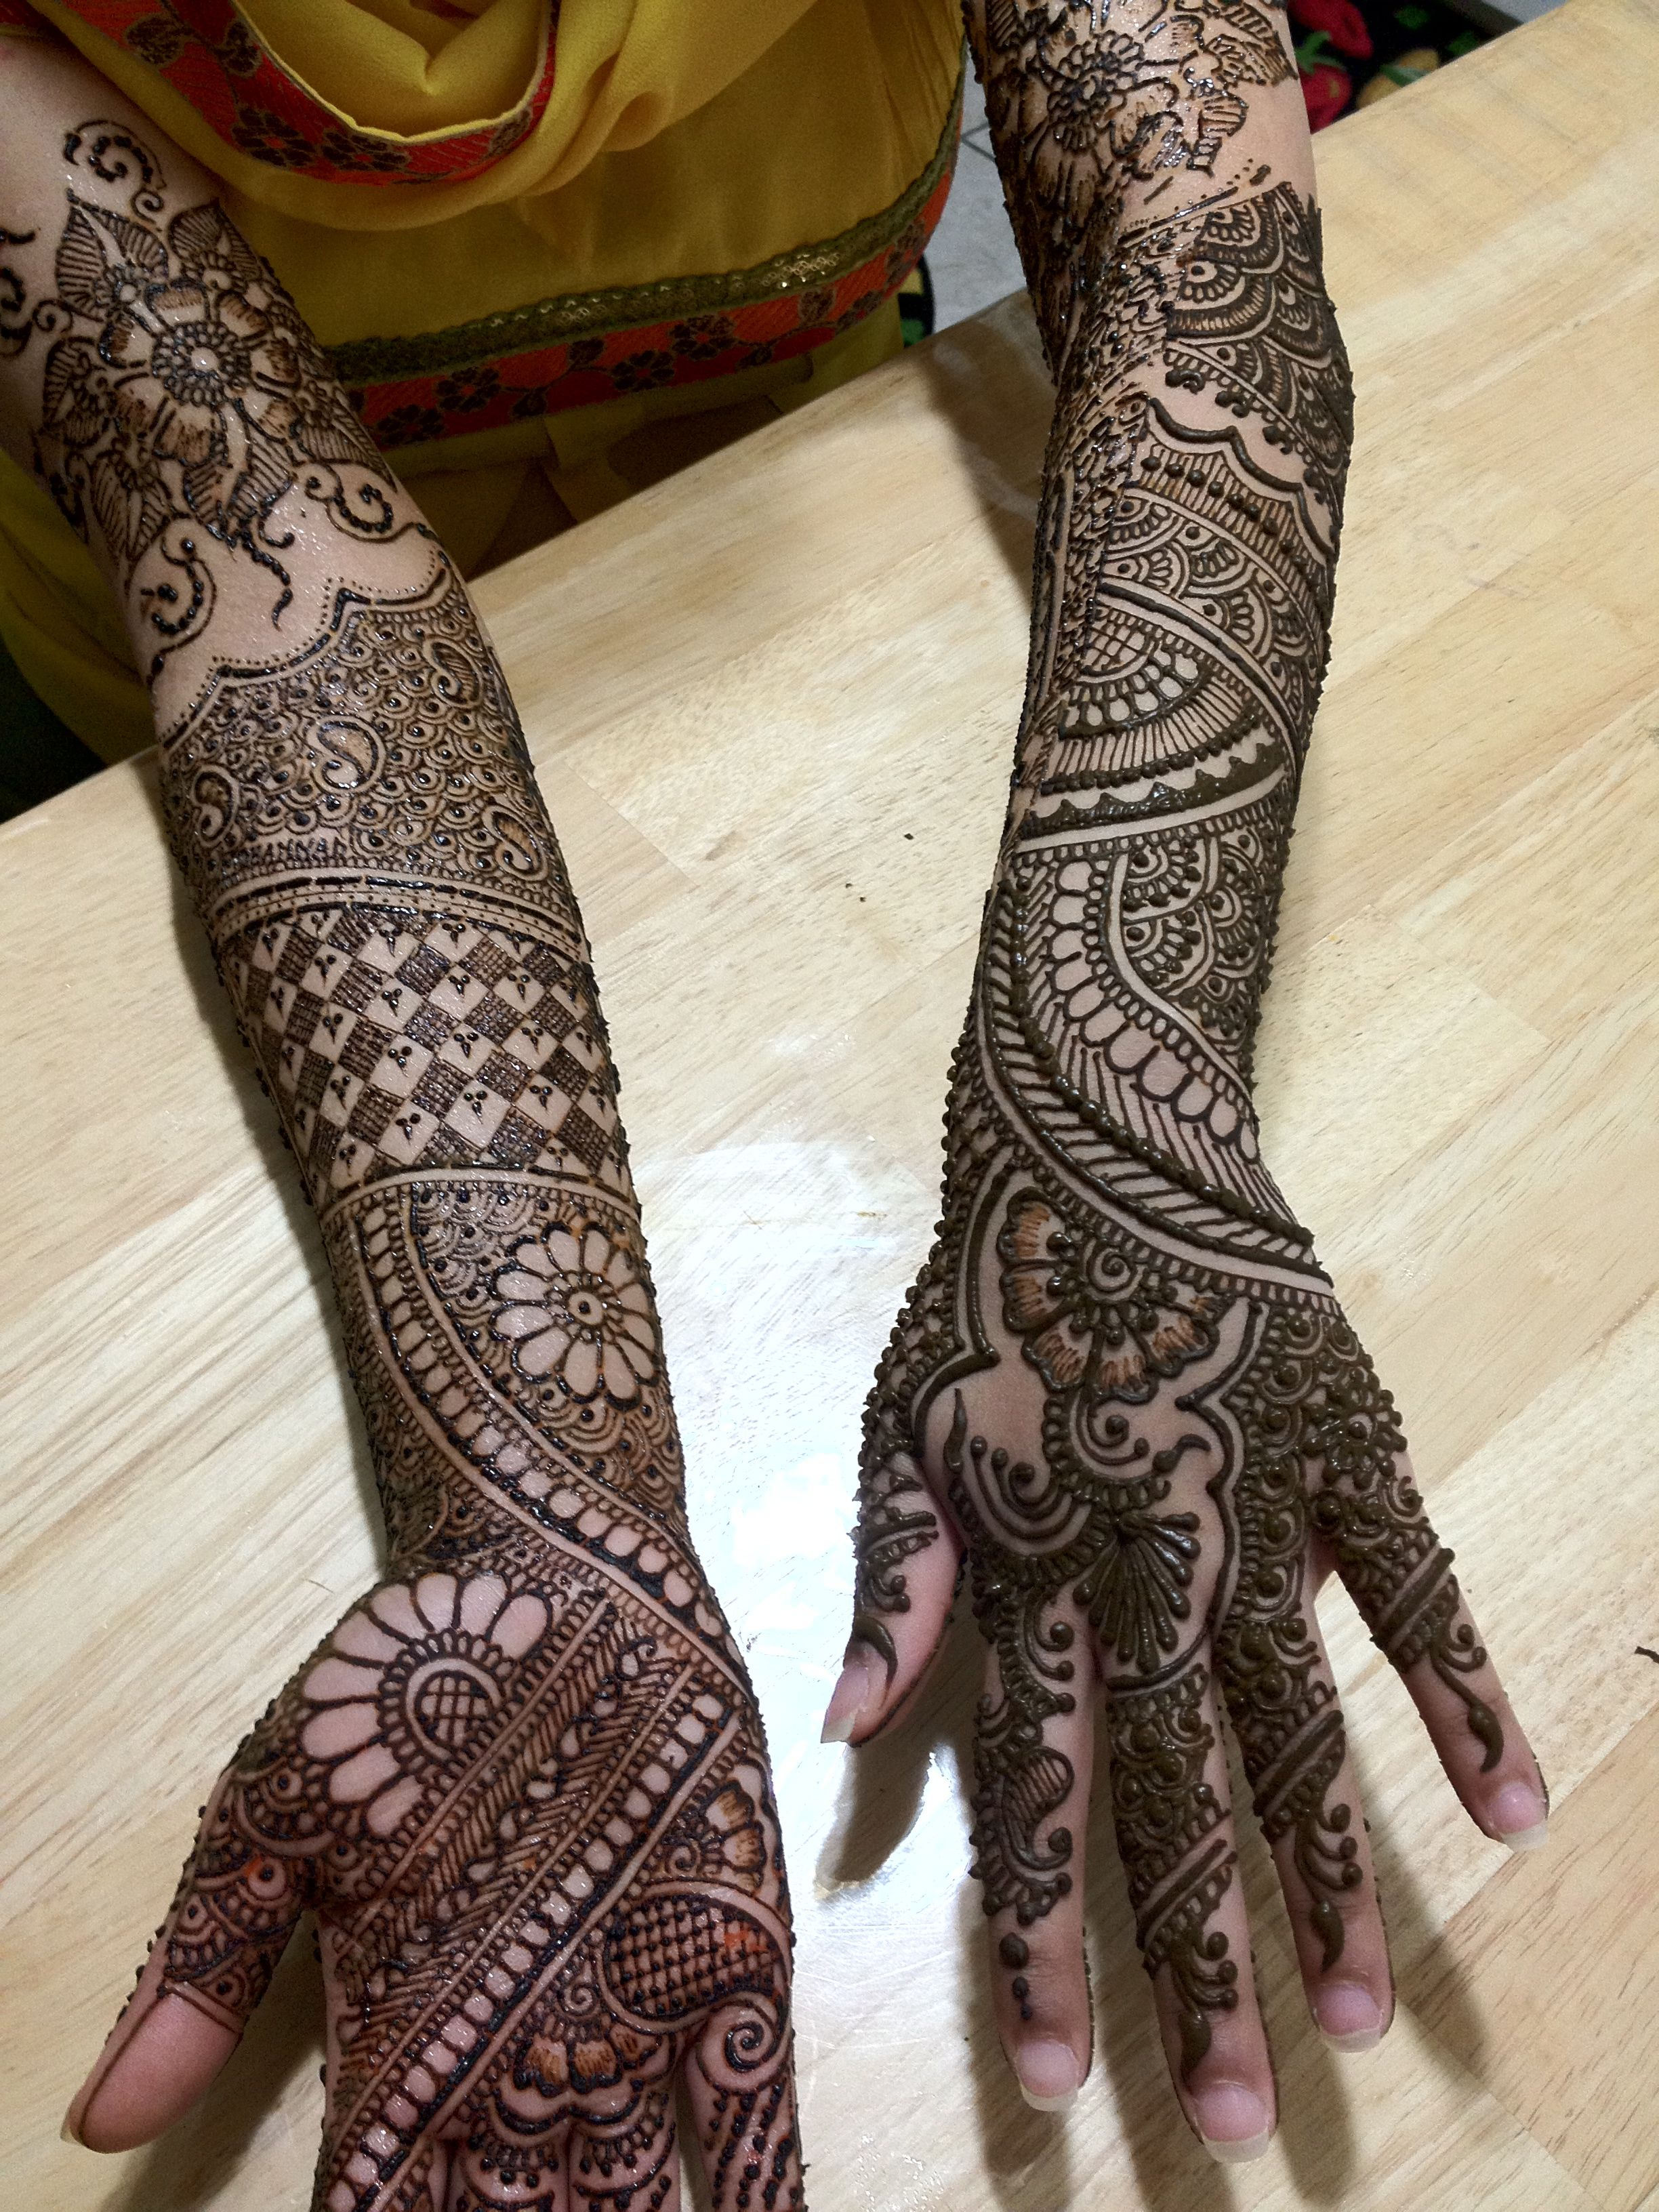 Mehndi Images For Bridal : Mehndi designs for eid ul fitr henna bridal